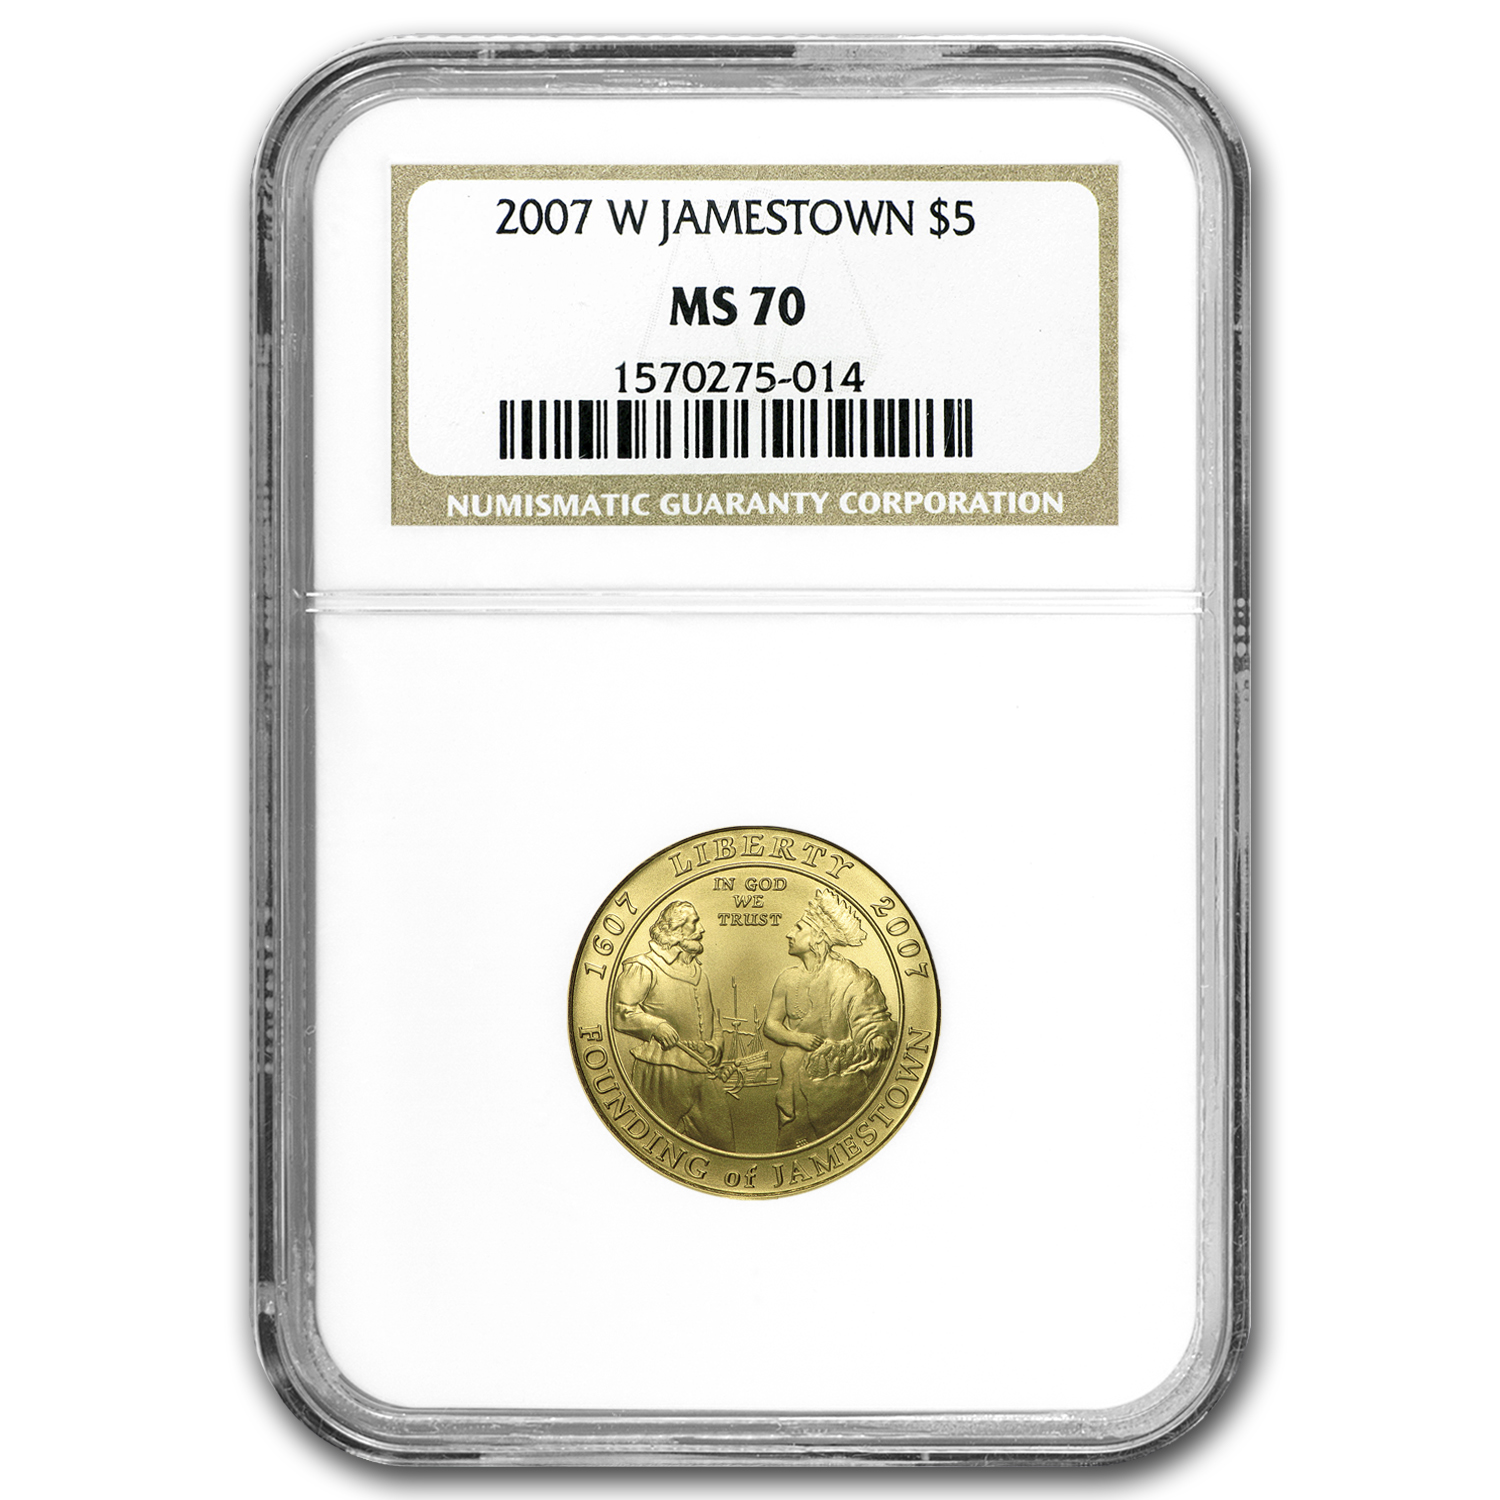 2007-W Gold $5 Commemorative Jamestown MS-70 NGC